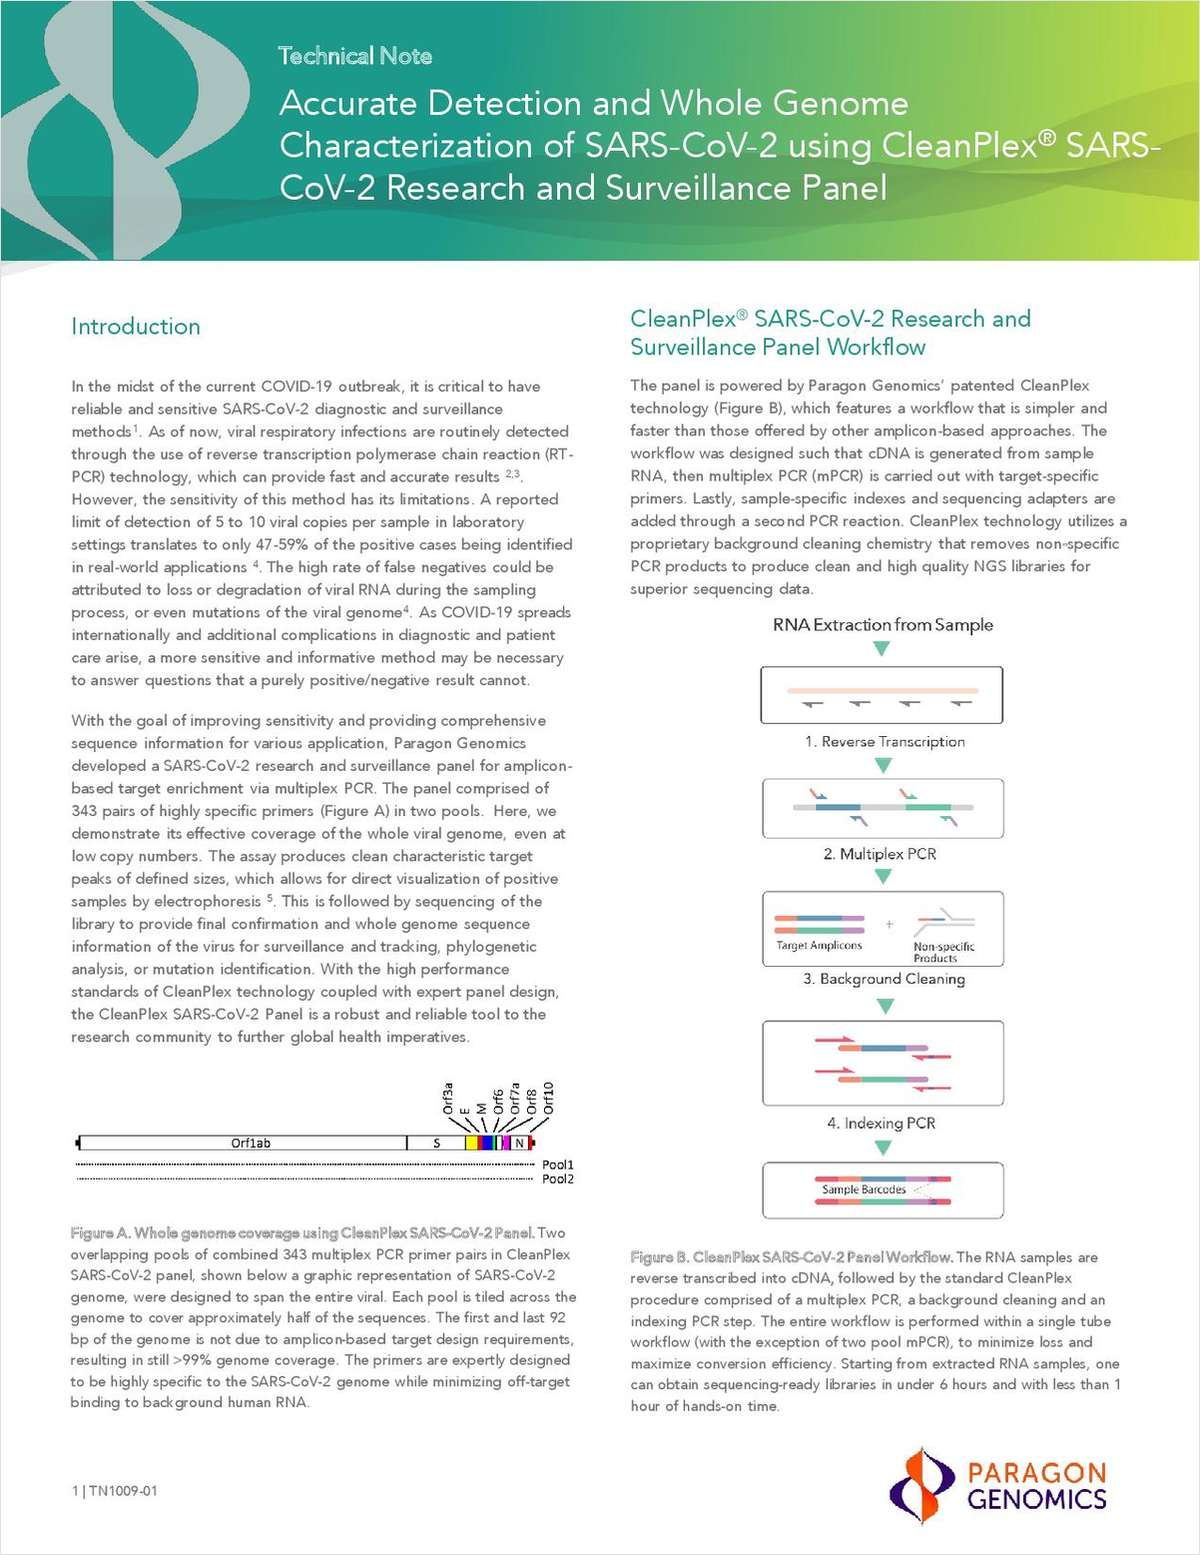 Accurate Detection and Whole Genome Characterization of SARS-CoV-2 using CleanPlex SARSCoV-2 Research and Surveillance Panel